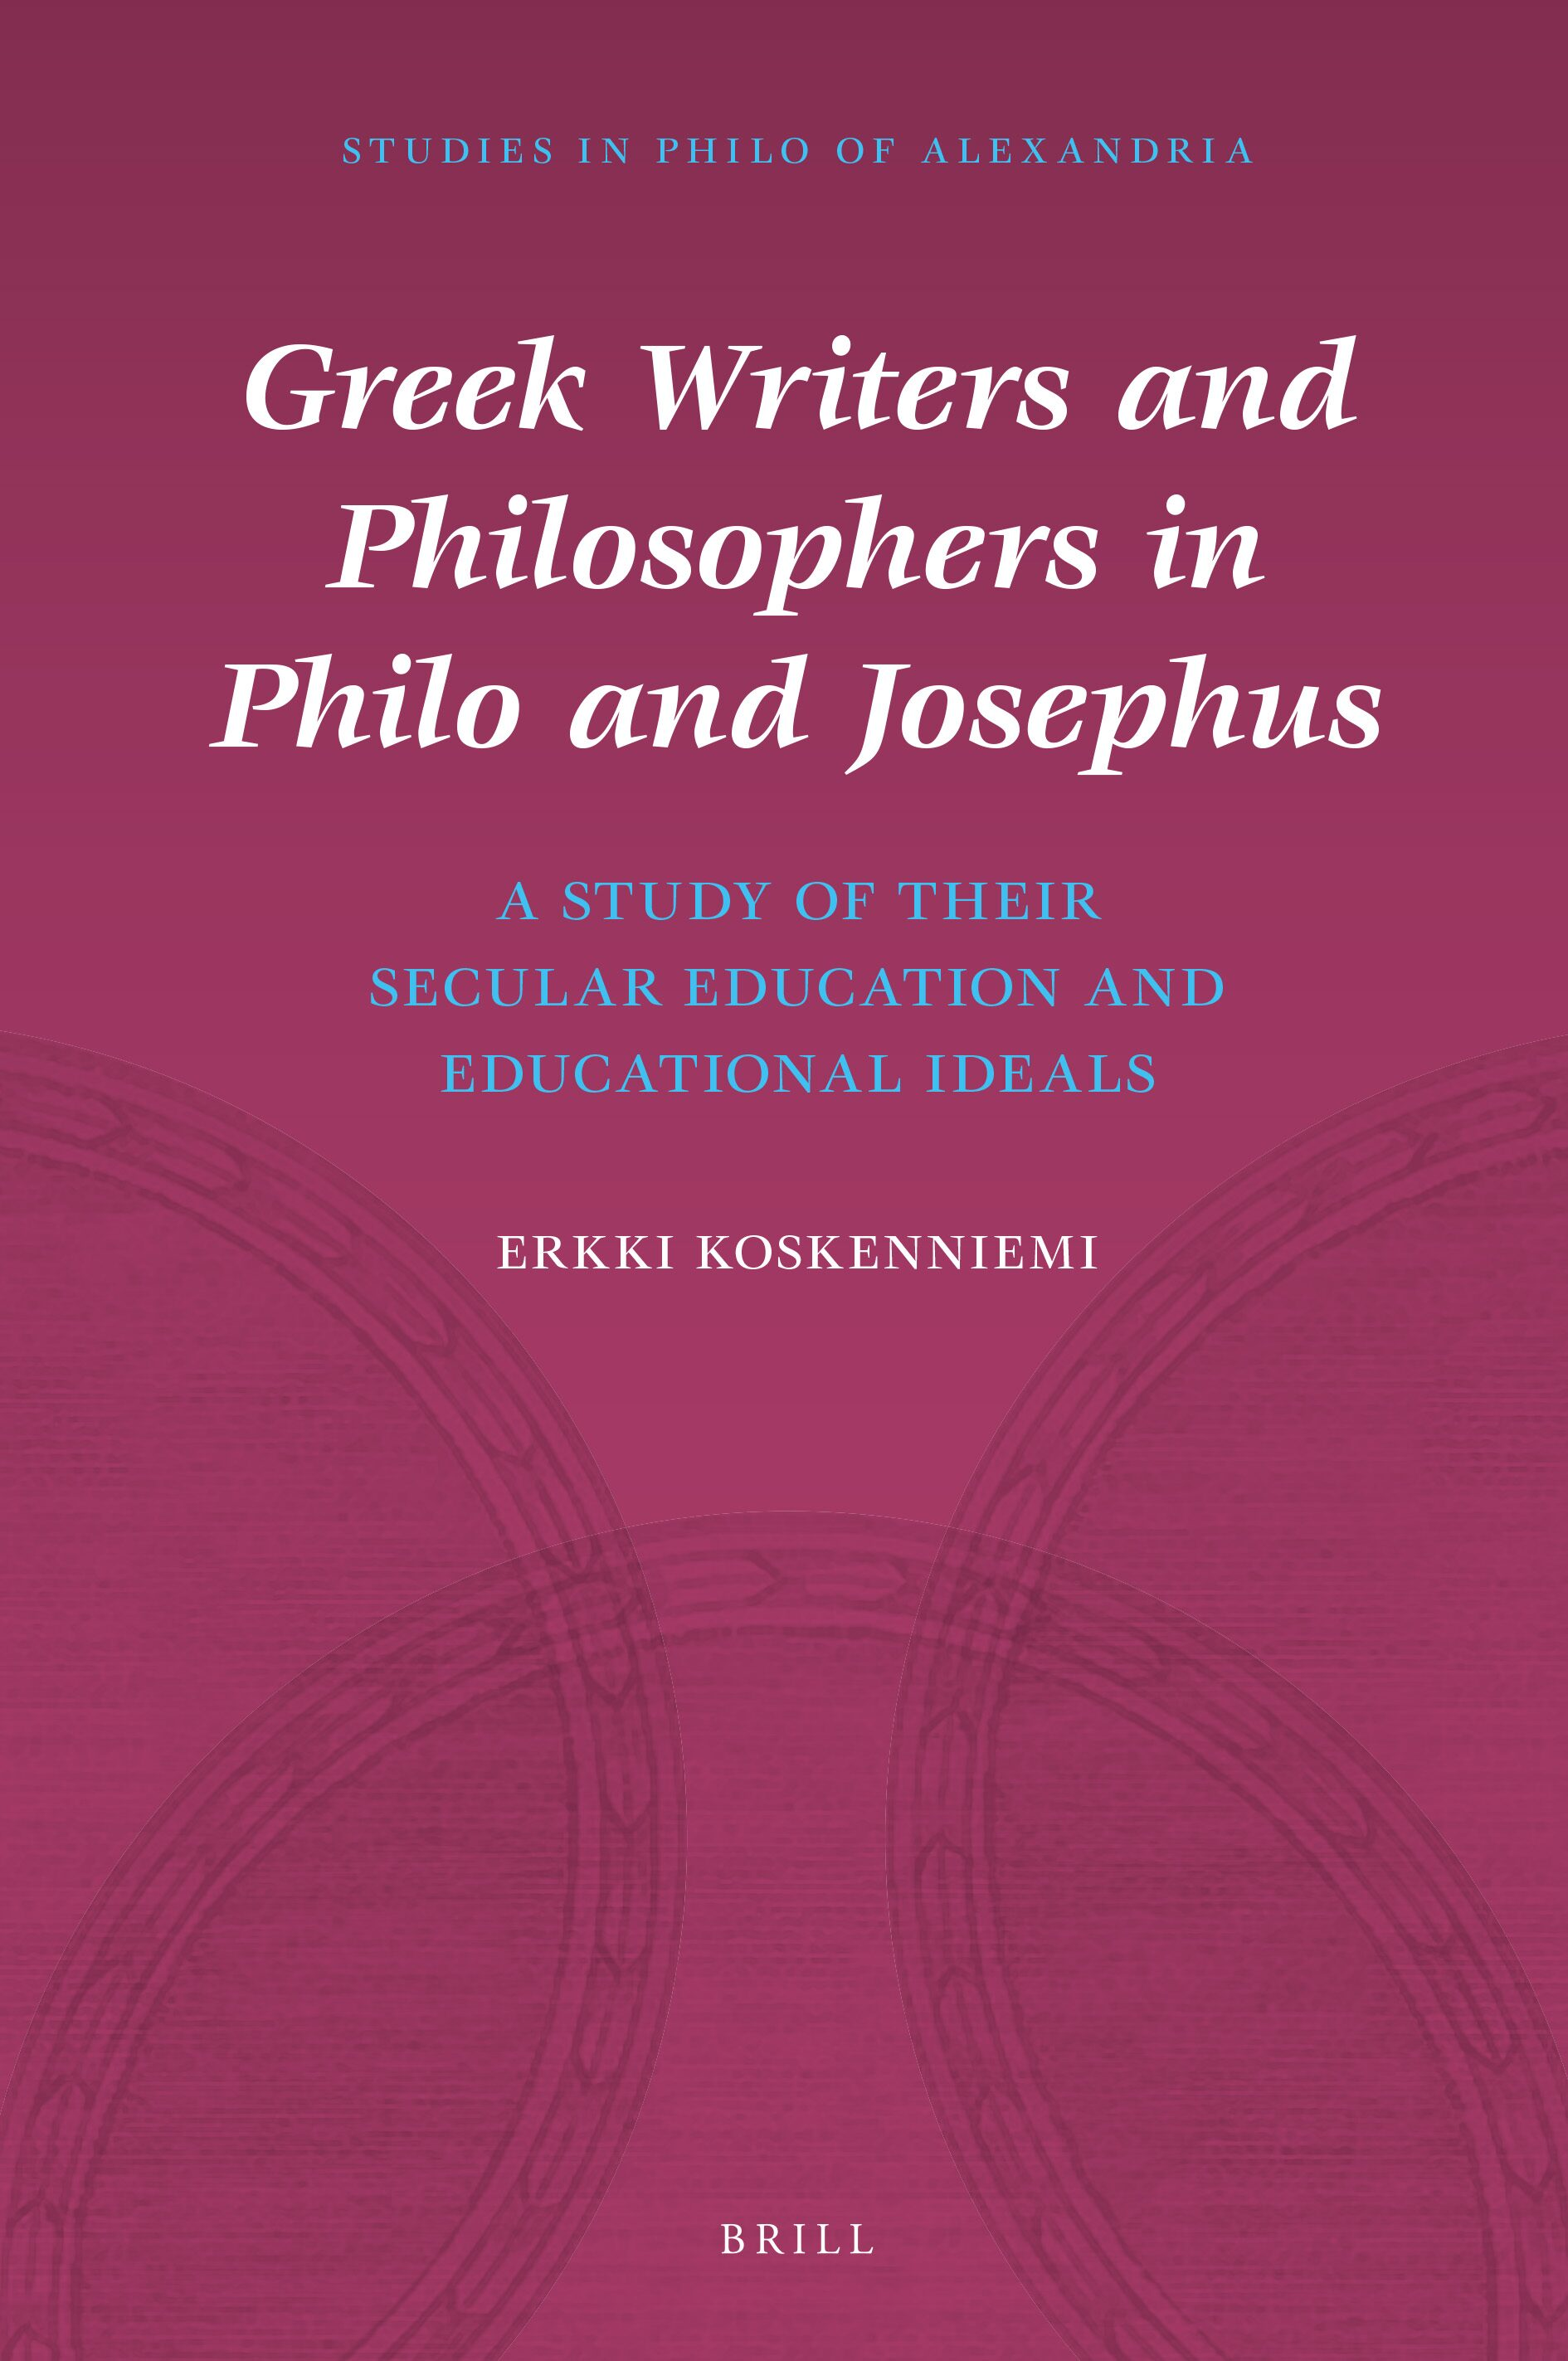 Philo fspring from Sarah and Hagar in Greek Writers and